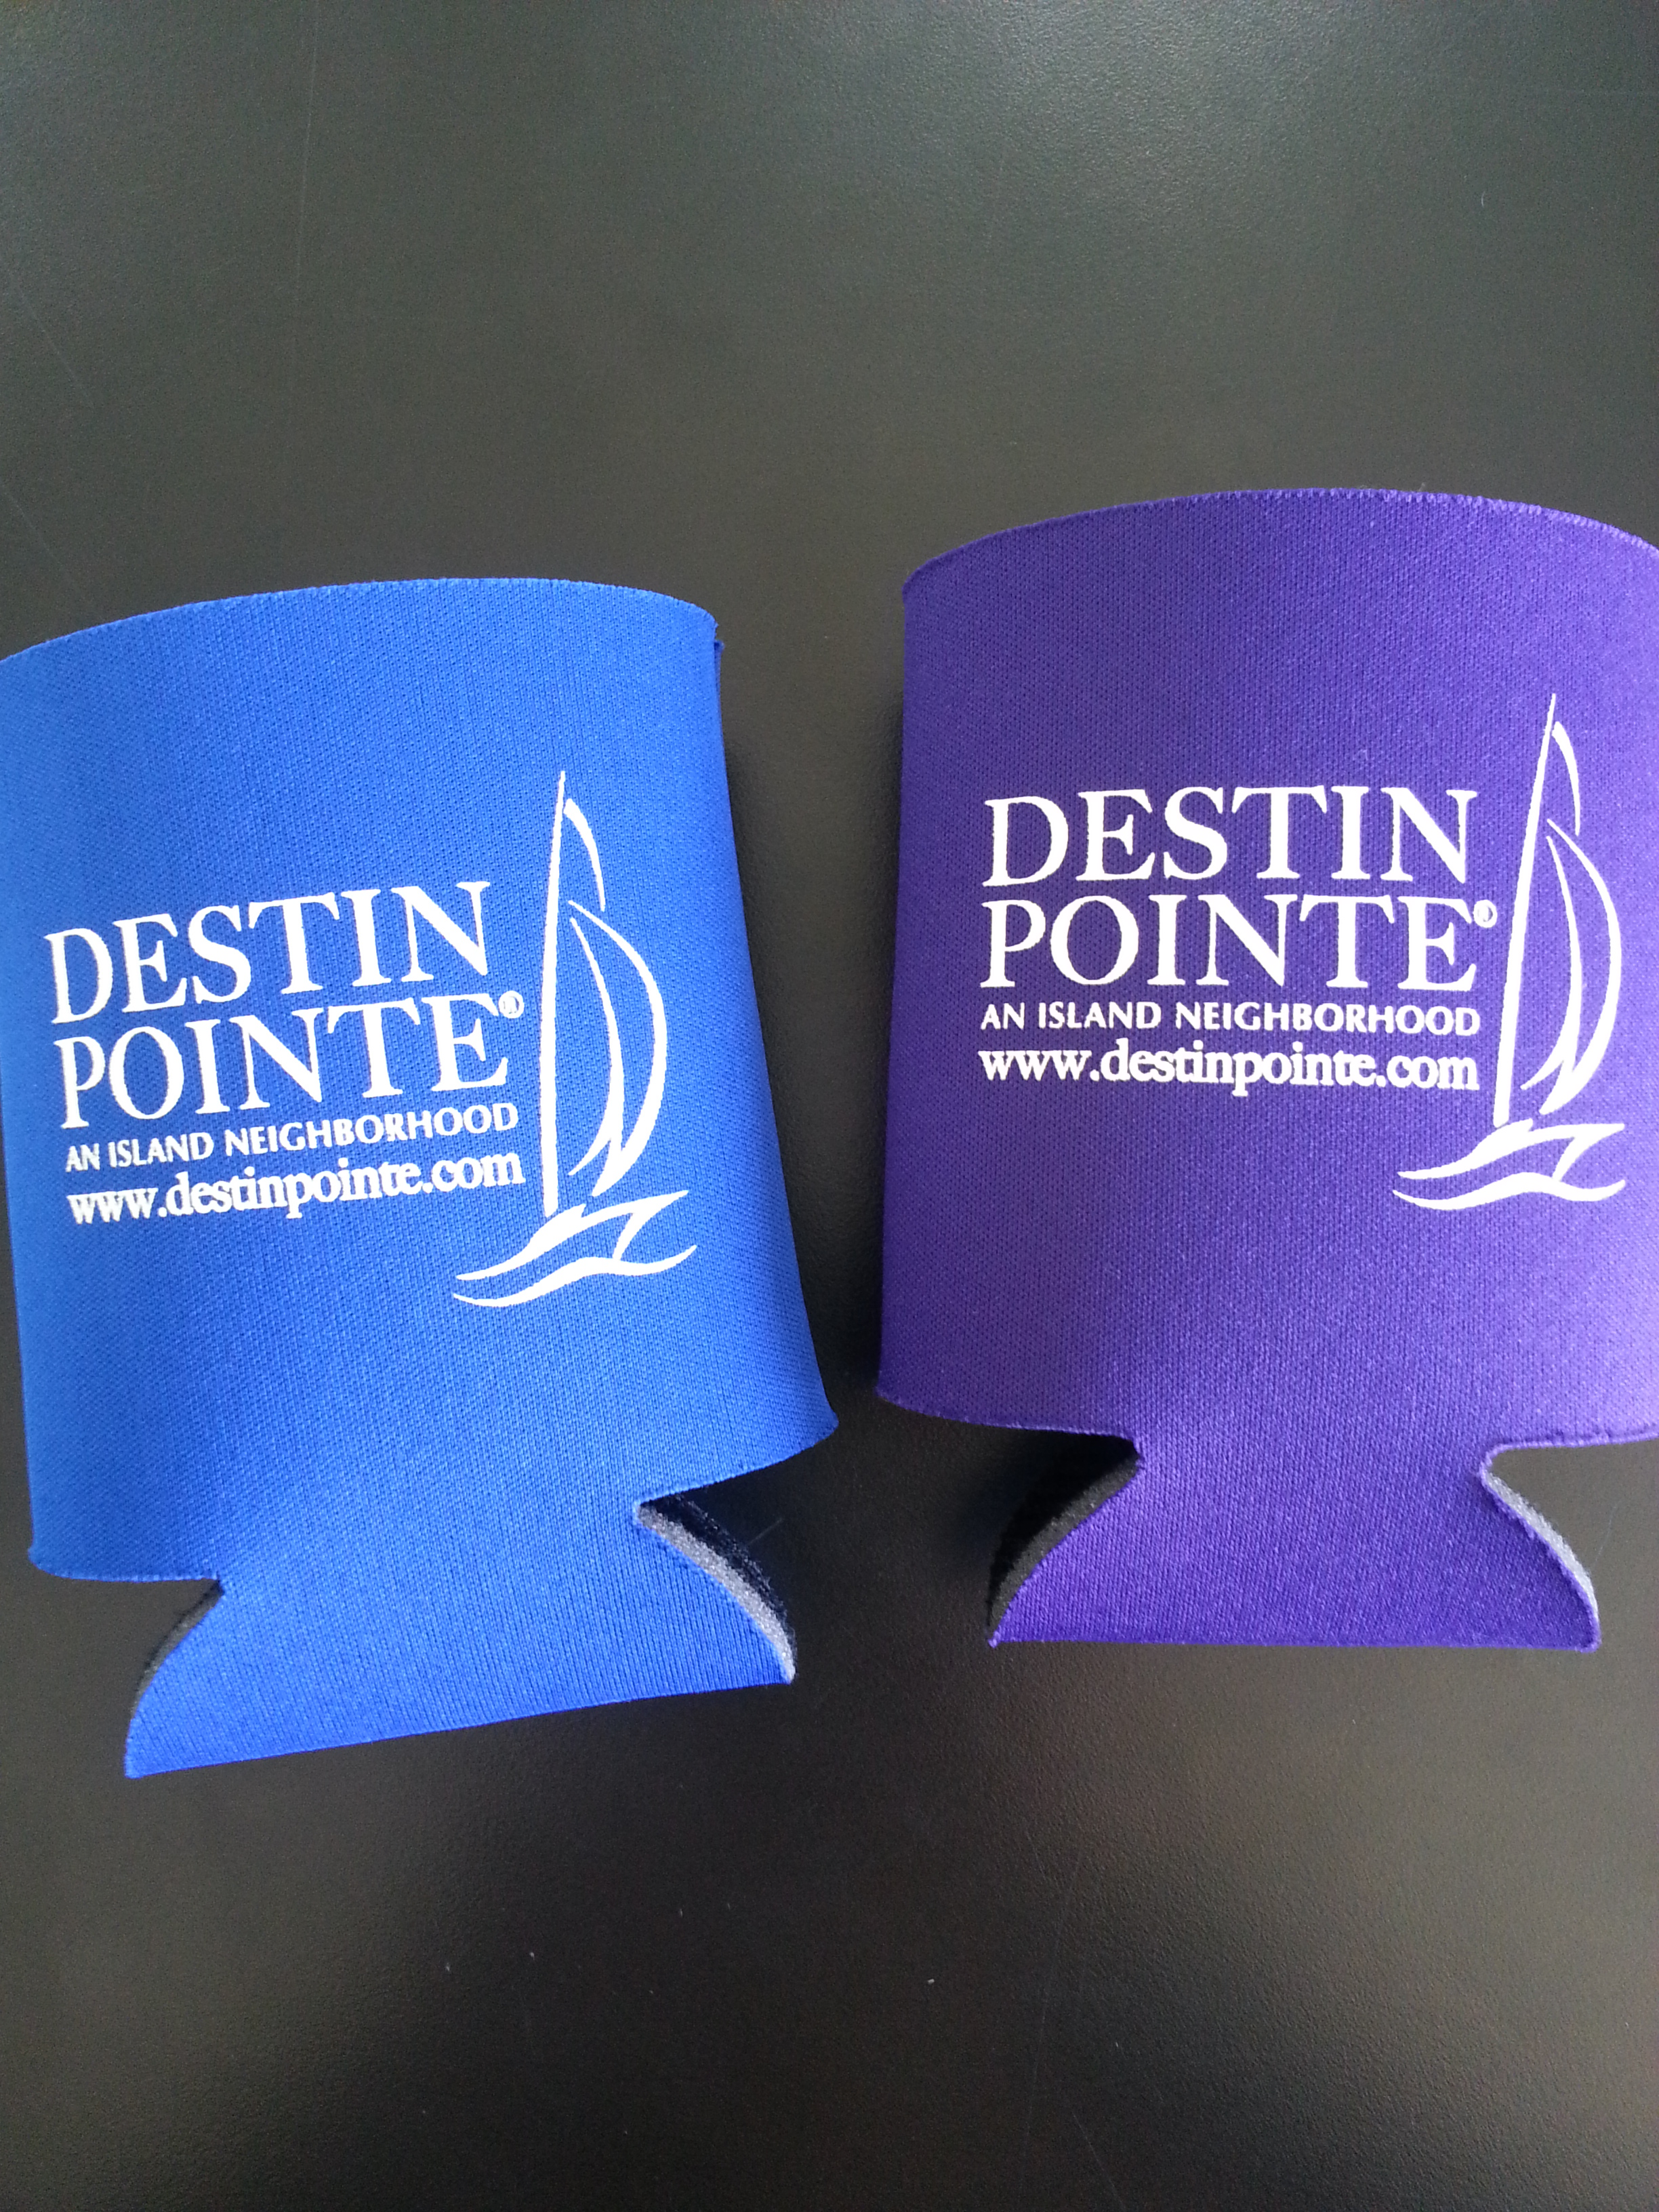 DP coozies